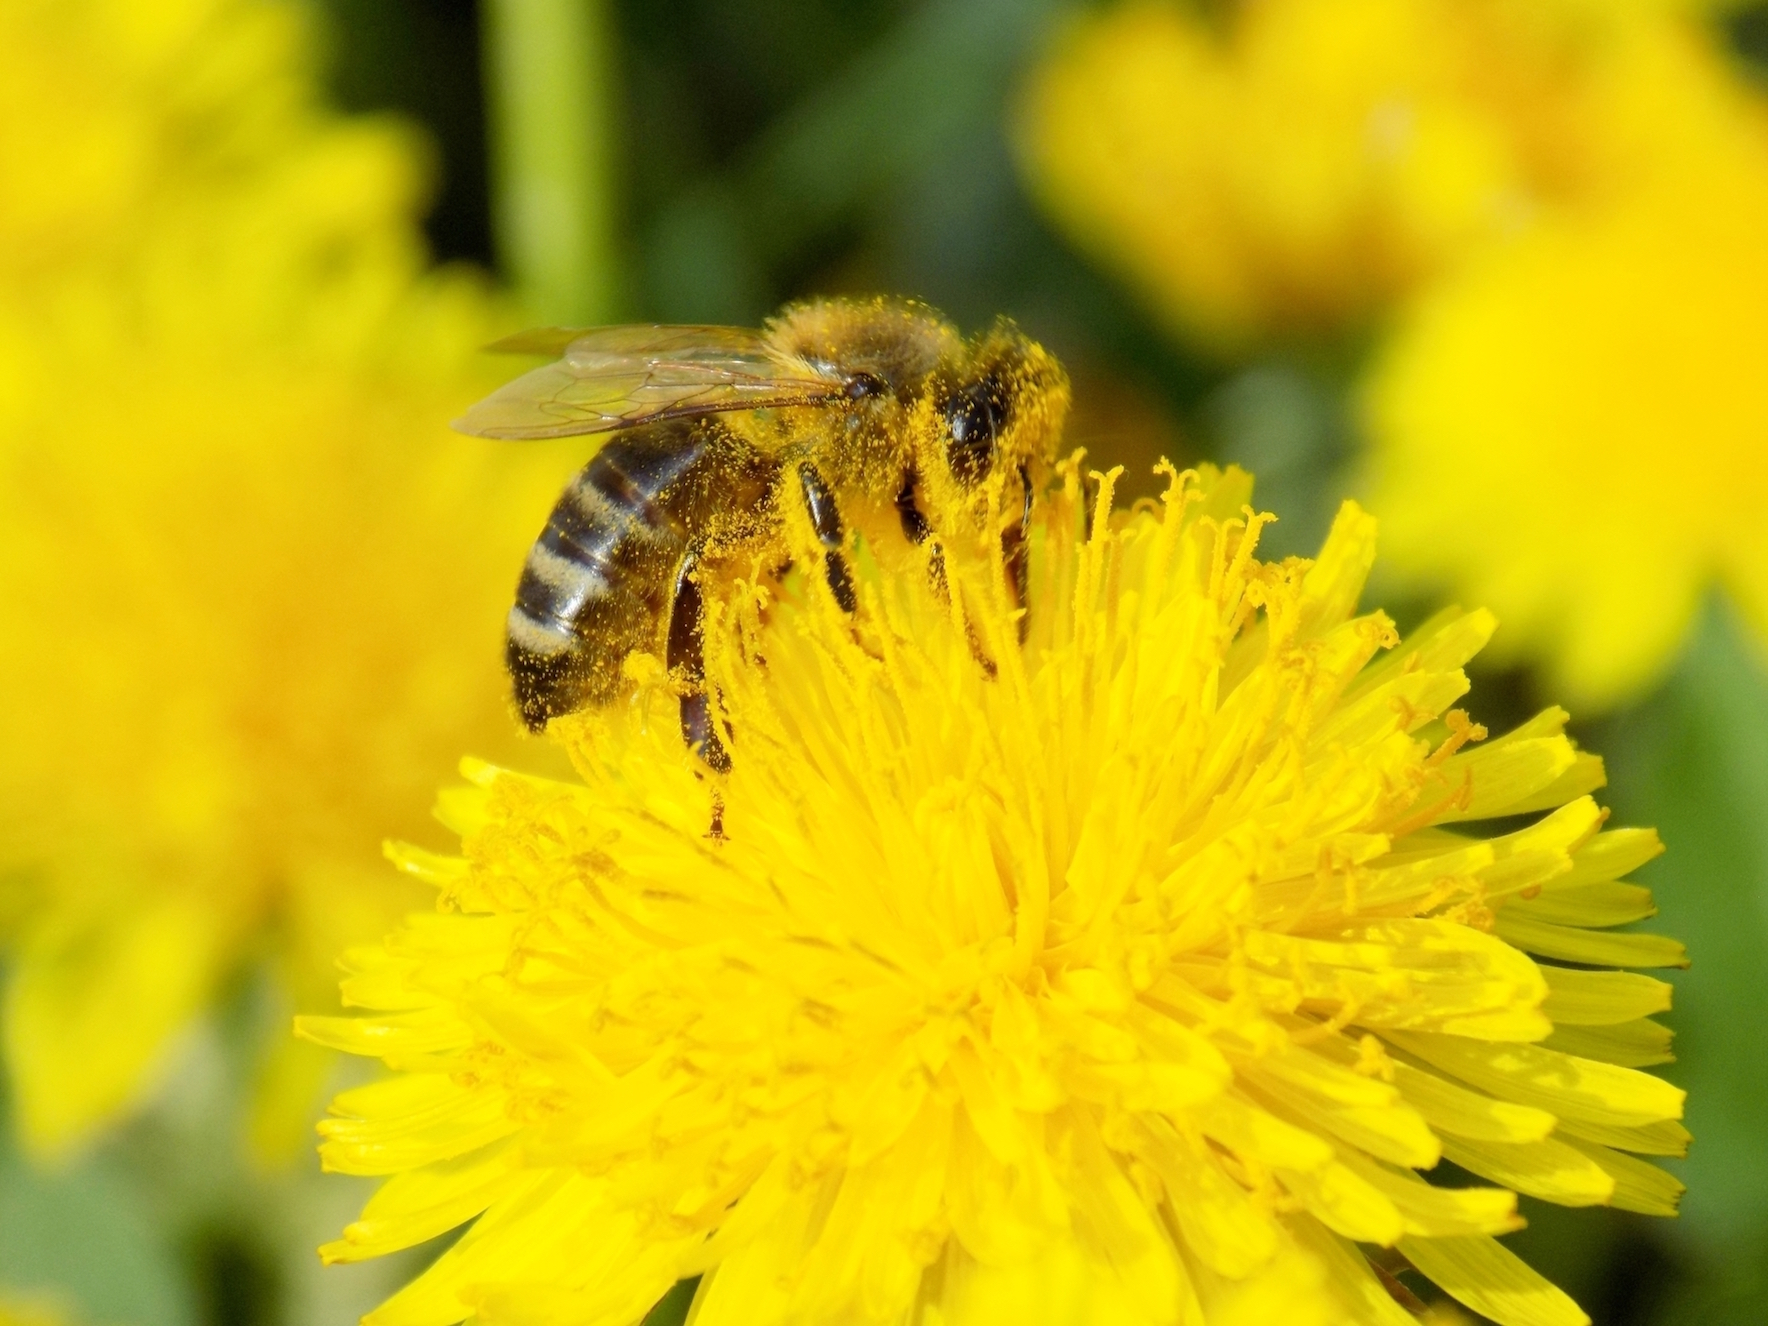 New research has proven that even after grooming, pollen stays on the bee's body in the perfect location for plants to receive it.